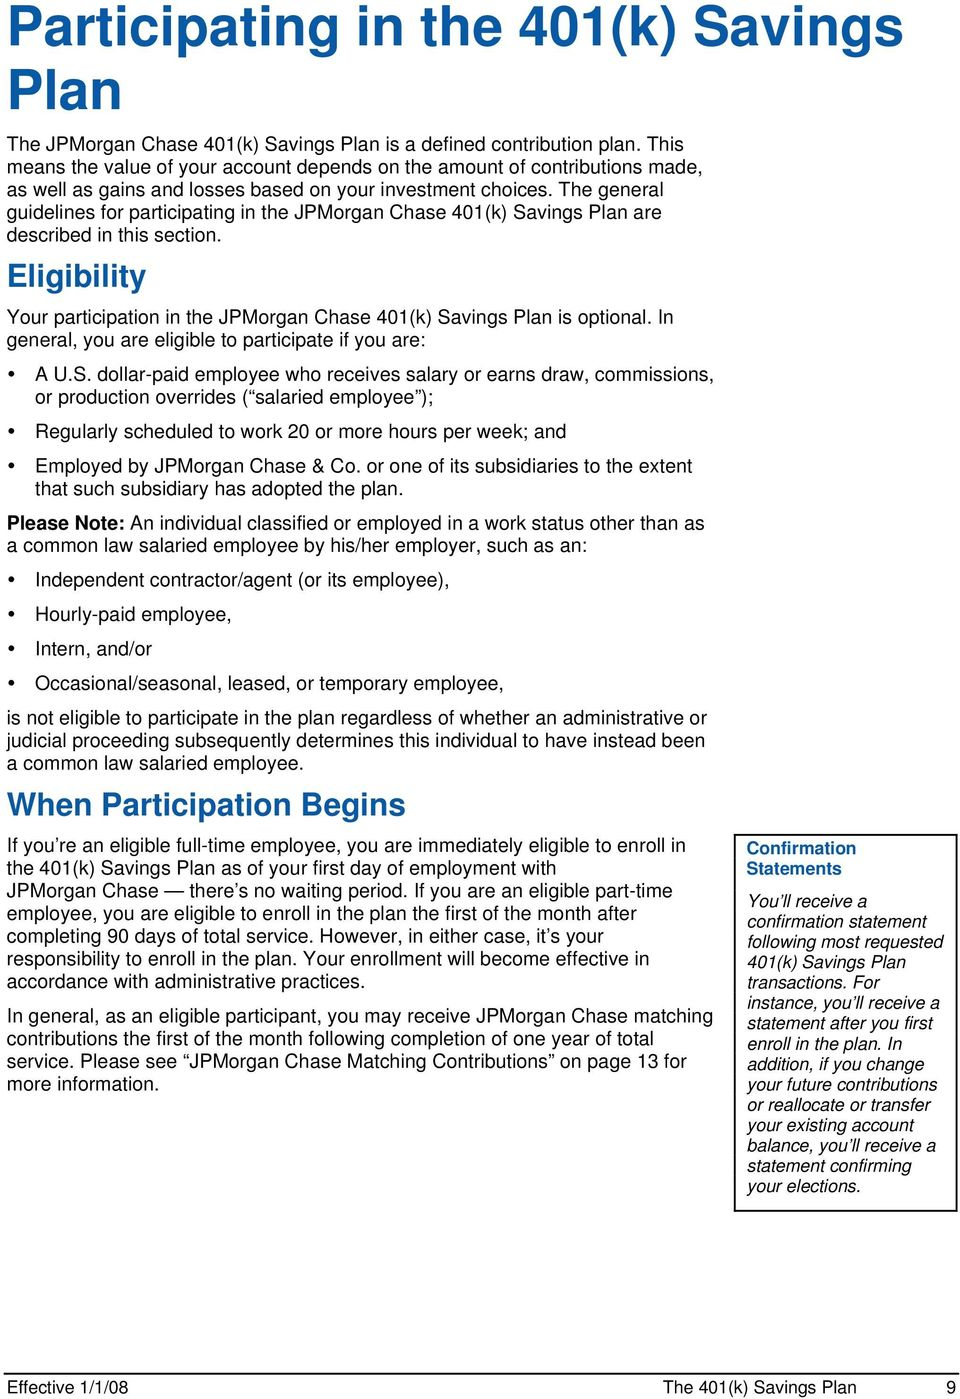 The general guidelines for participating in the JPMorgan Chase 401(k) Savings Plan are described in this section. Eligibility Your participation in the JPMorgan Chase 401(k) Savings Plan is optional.